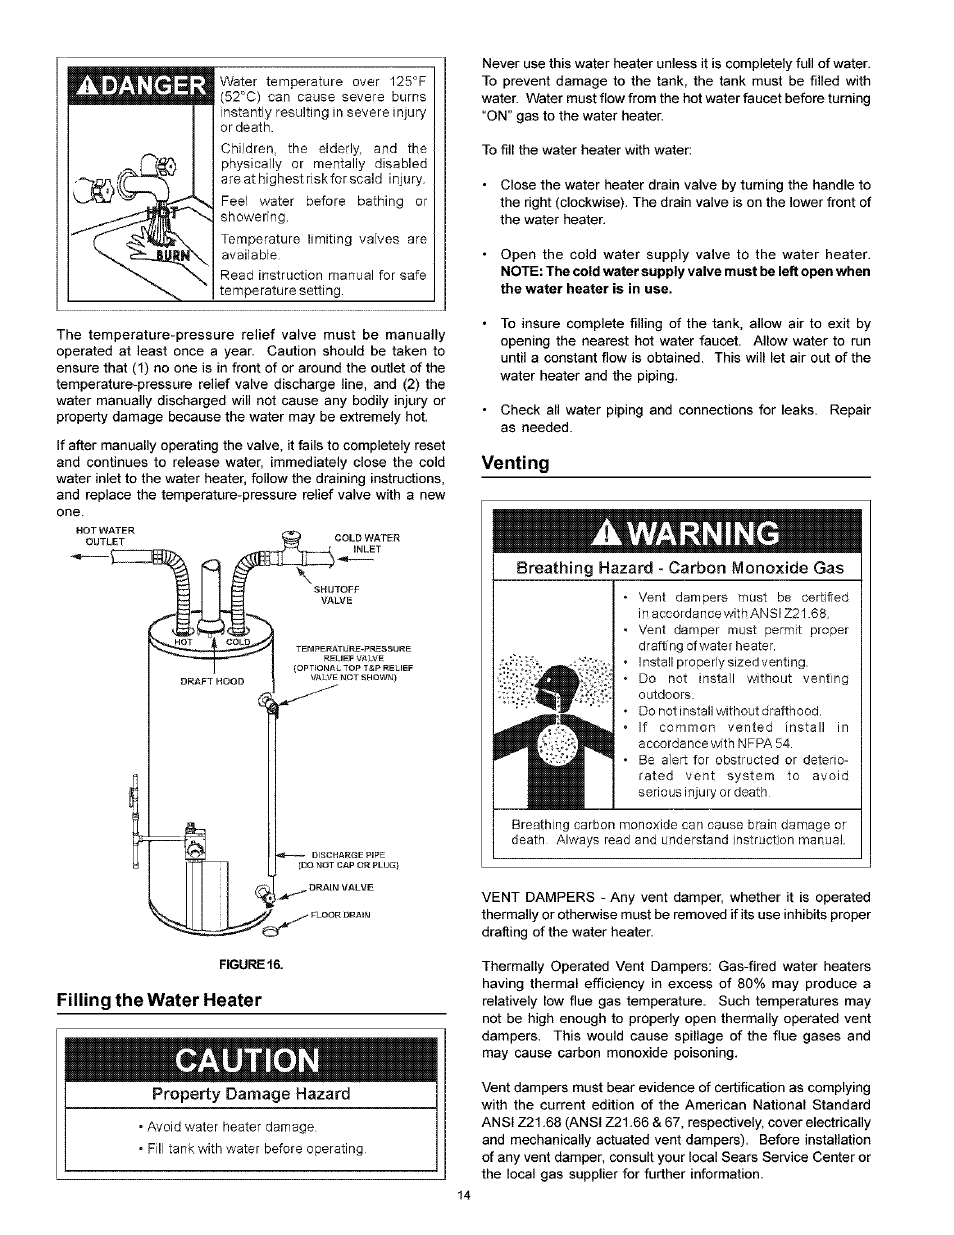 Filling the water heater, Venting, Caution | Adanger, Warning | Kenmore  POWER MISER